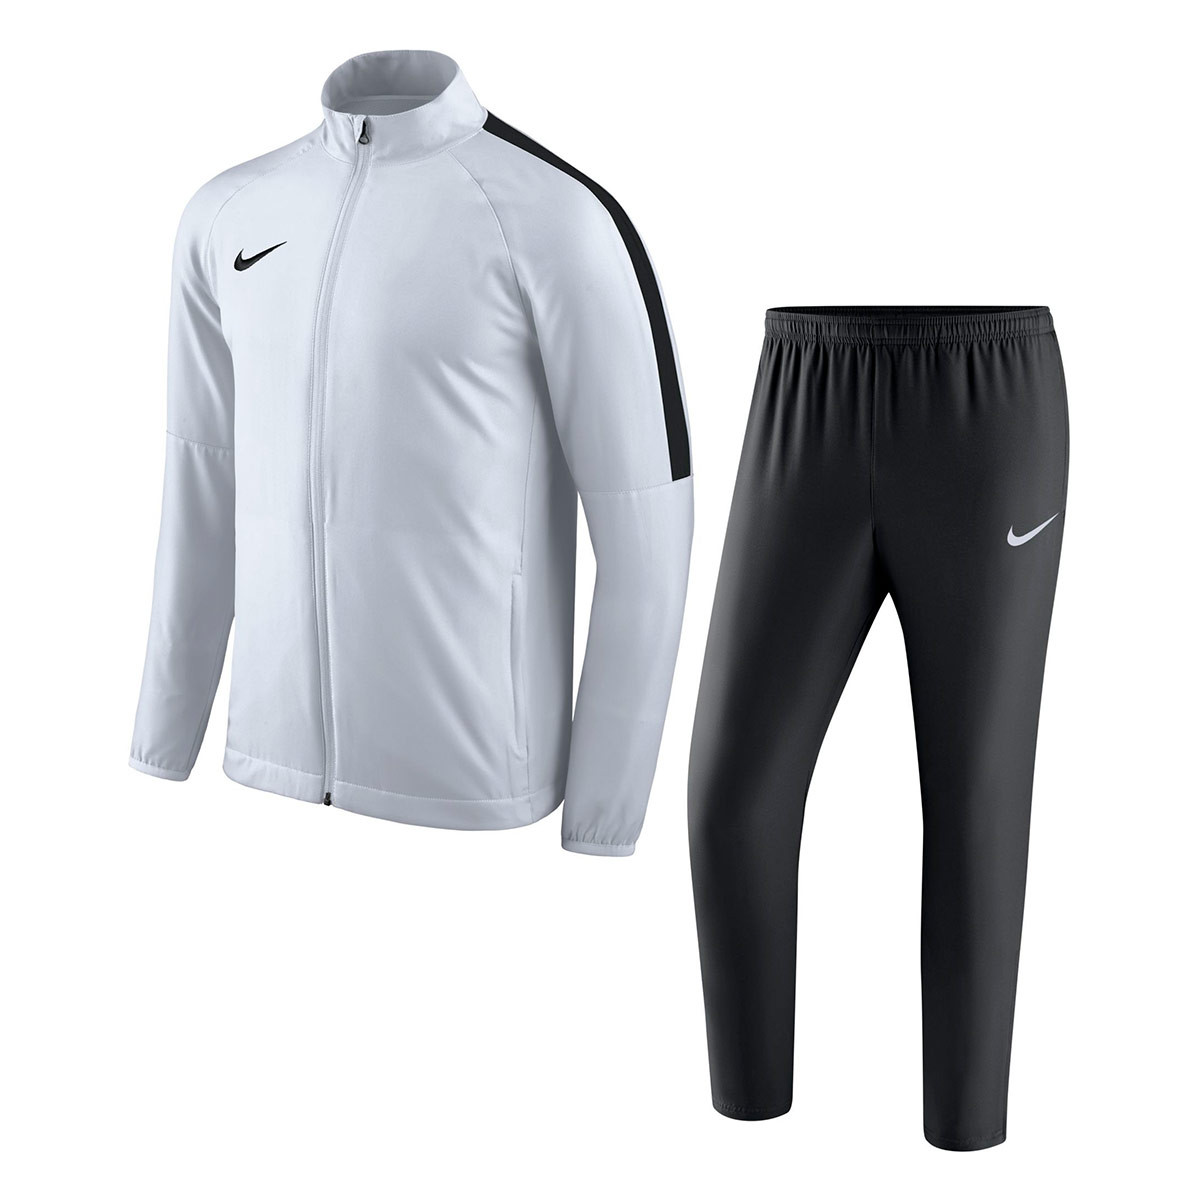 f852891f4a9d4 Tracksuit Nike Academy 18 Woven White-Black - Football store Fútbol ...